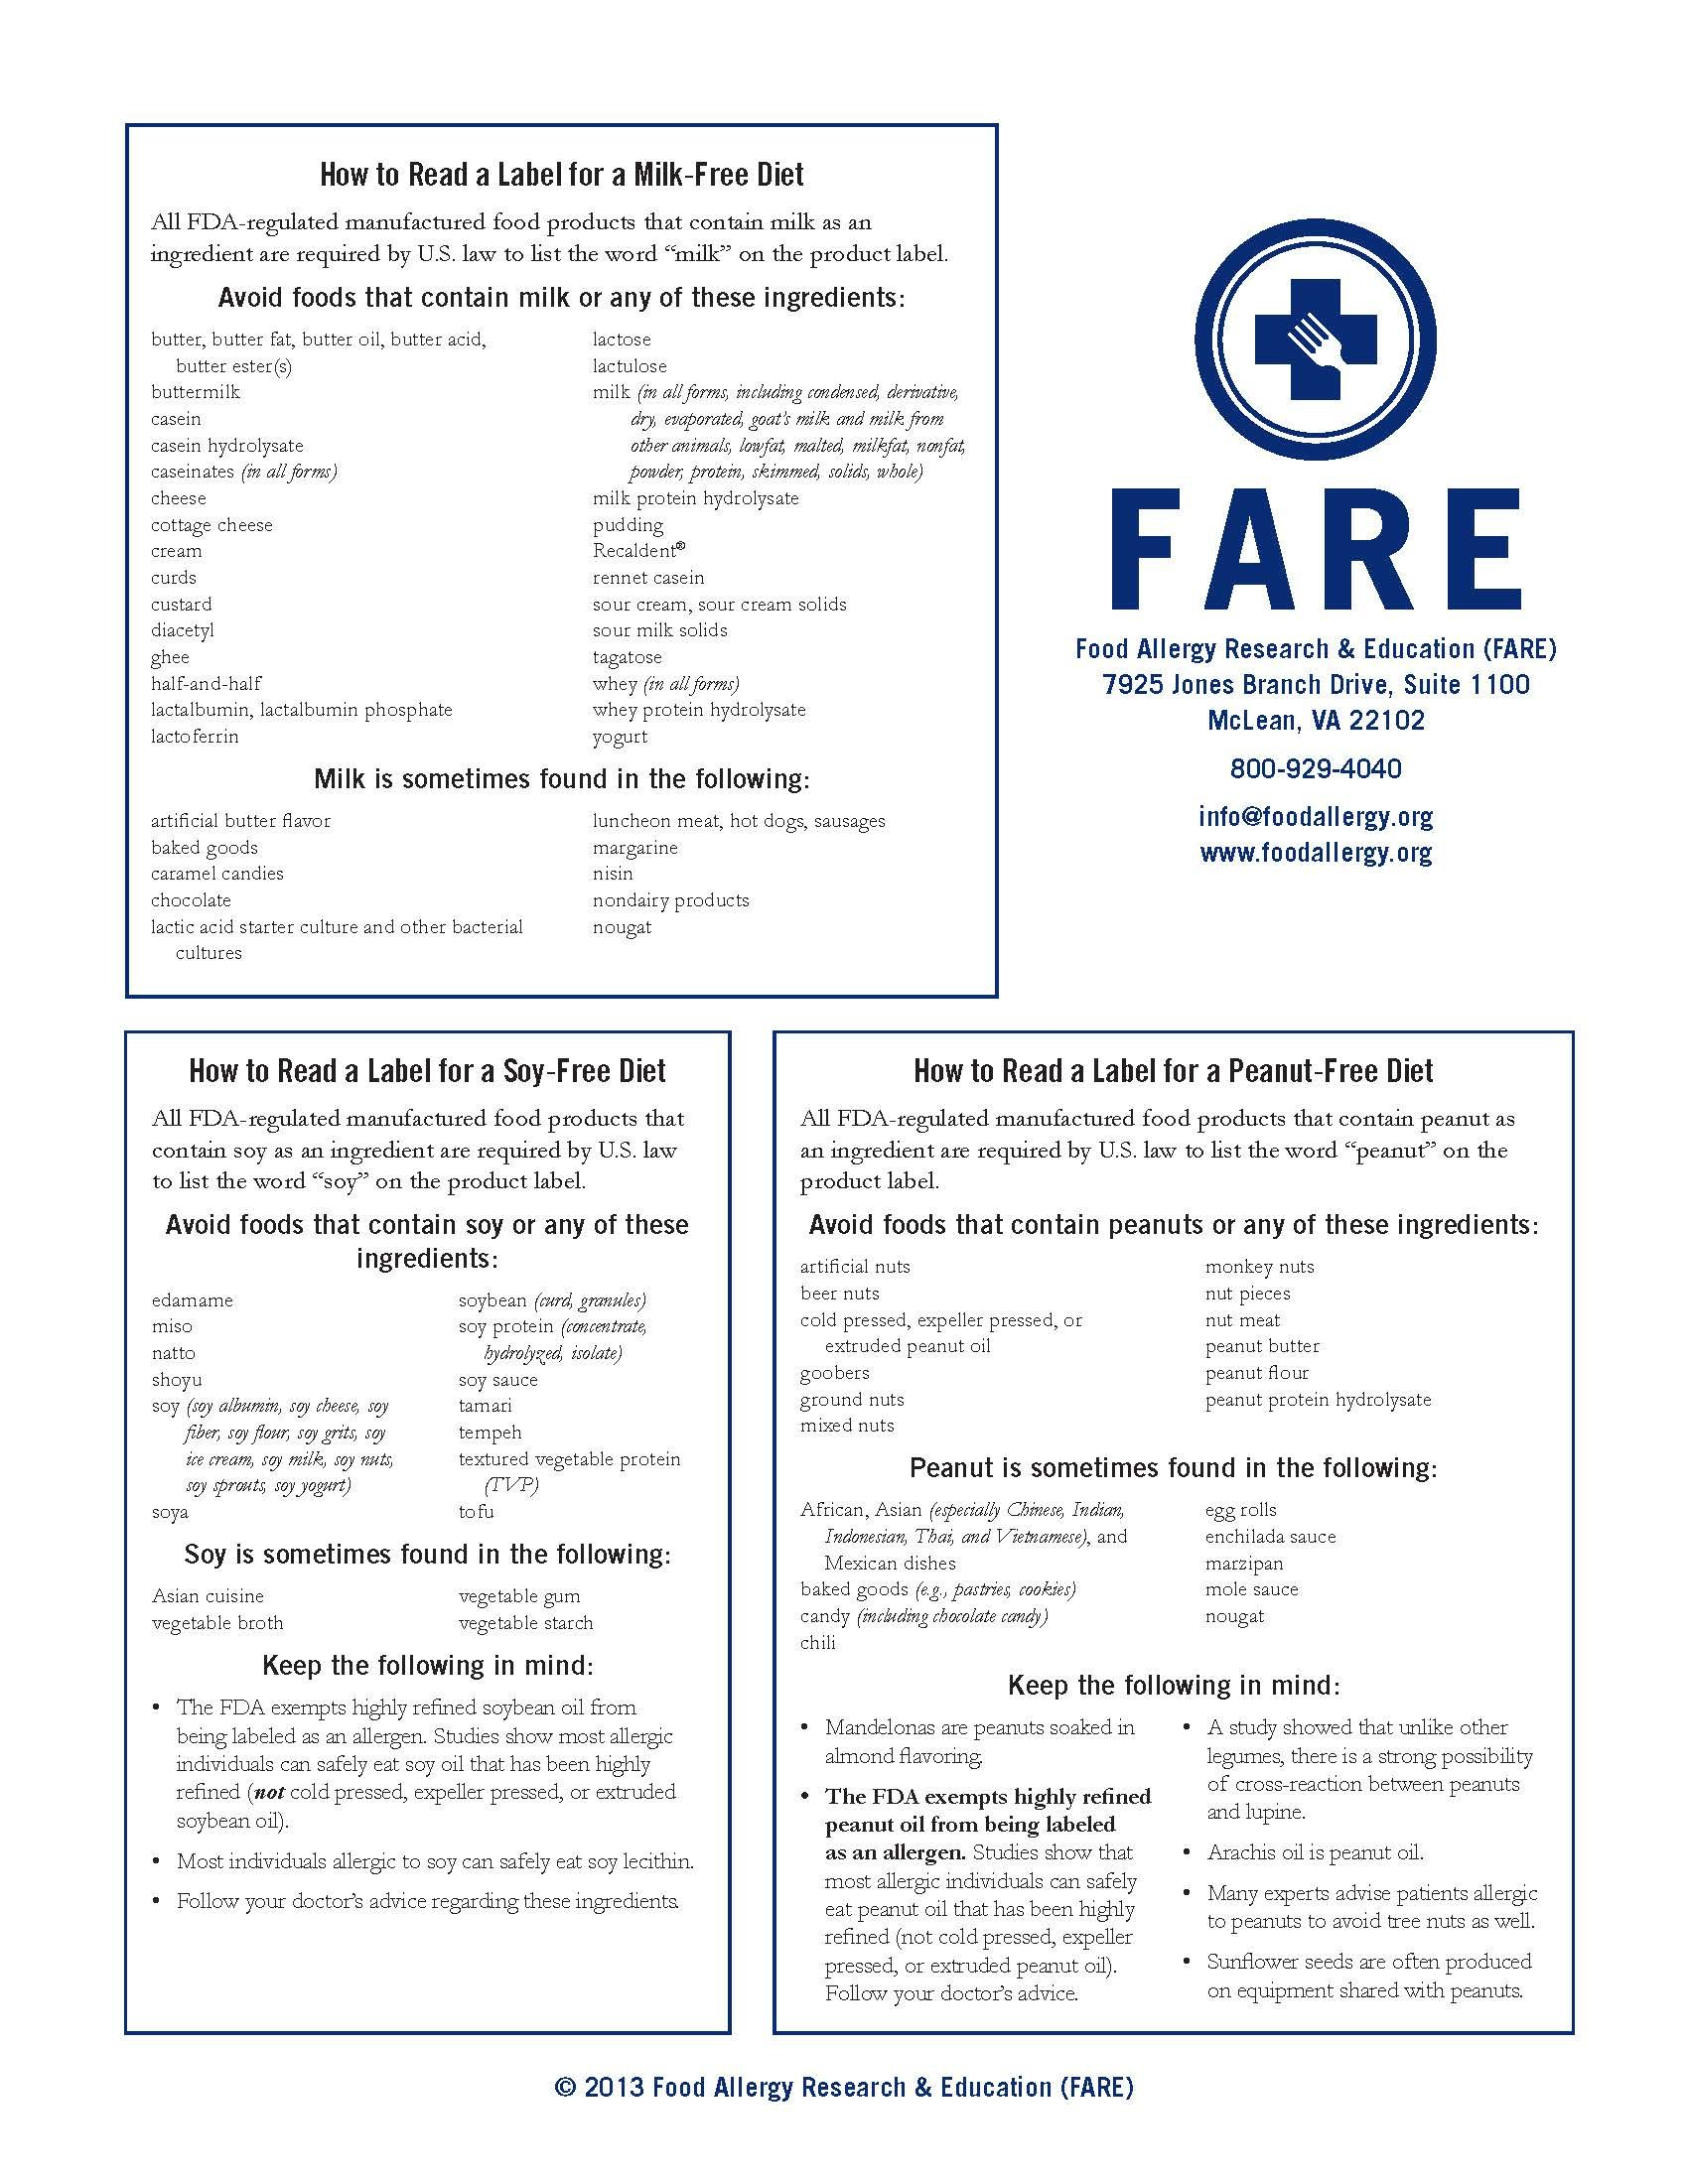 How To Read Food Labels For Allergy